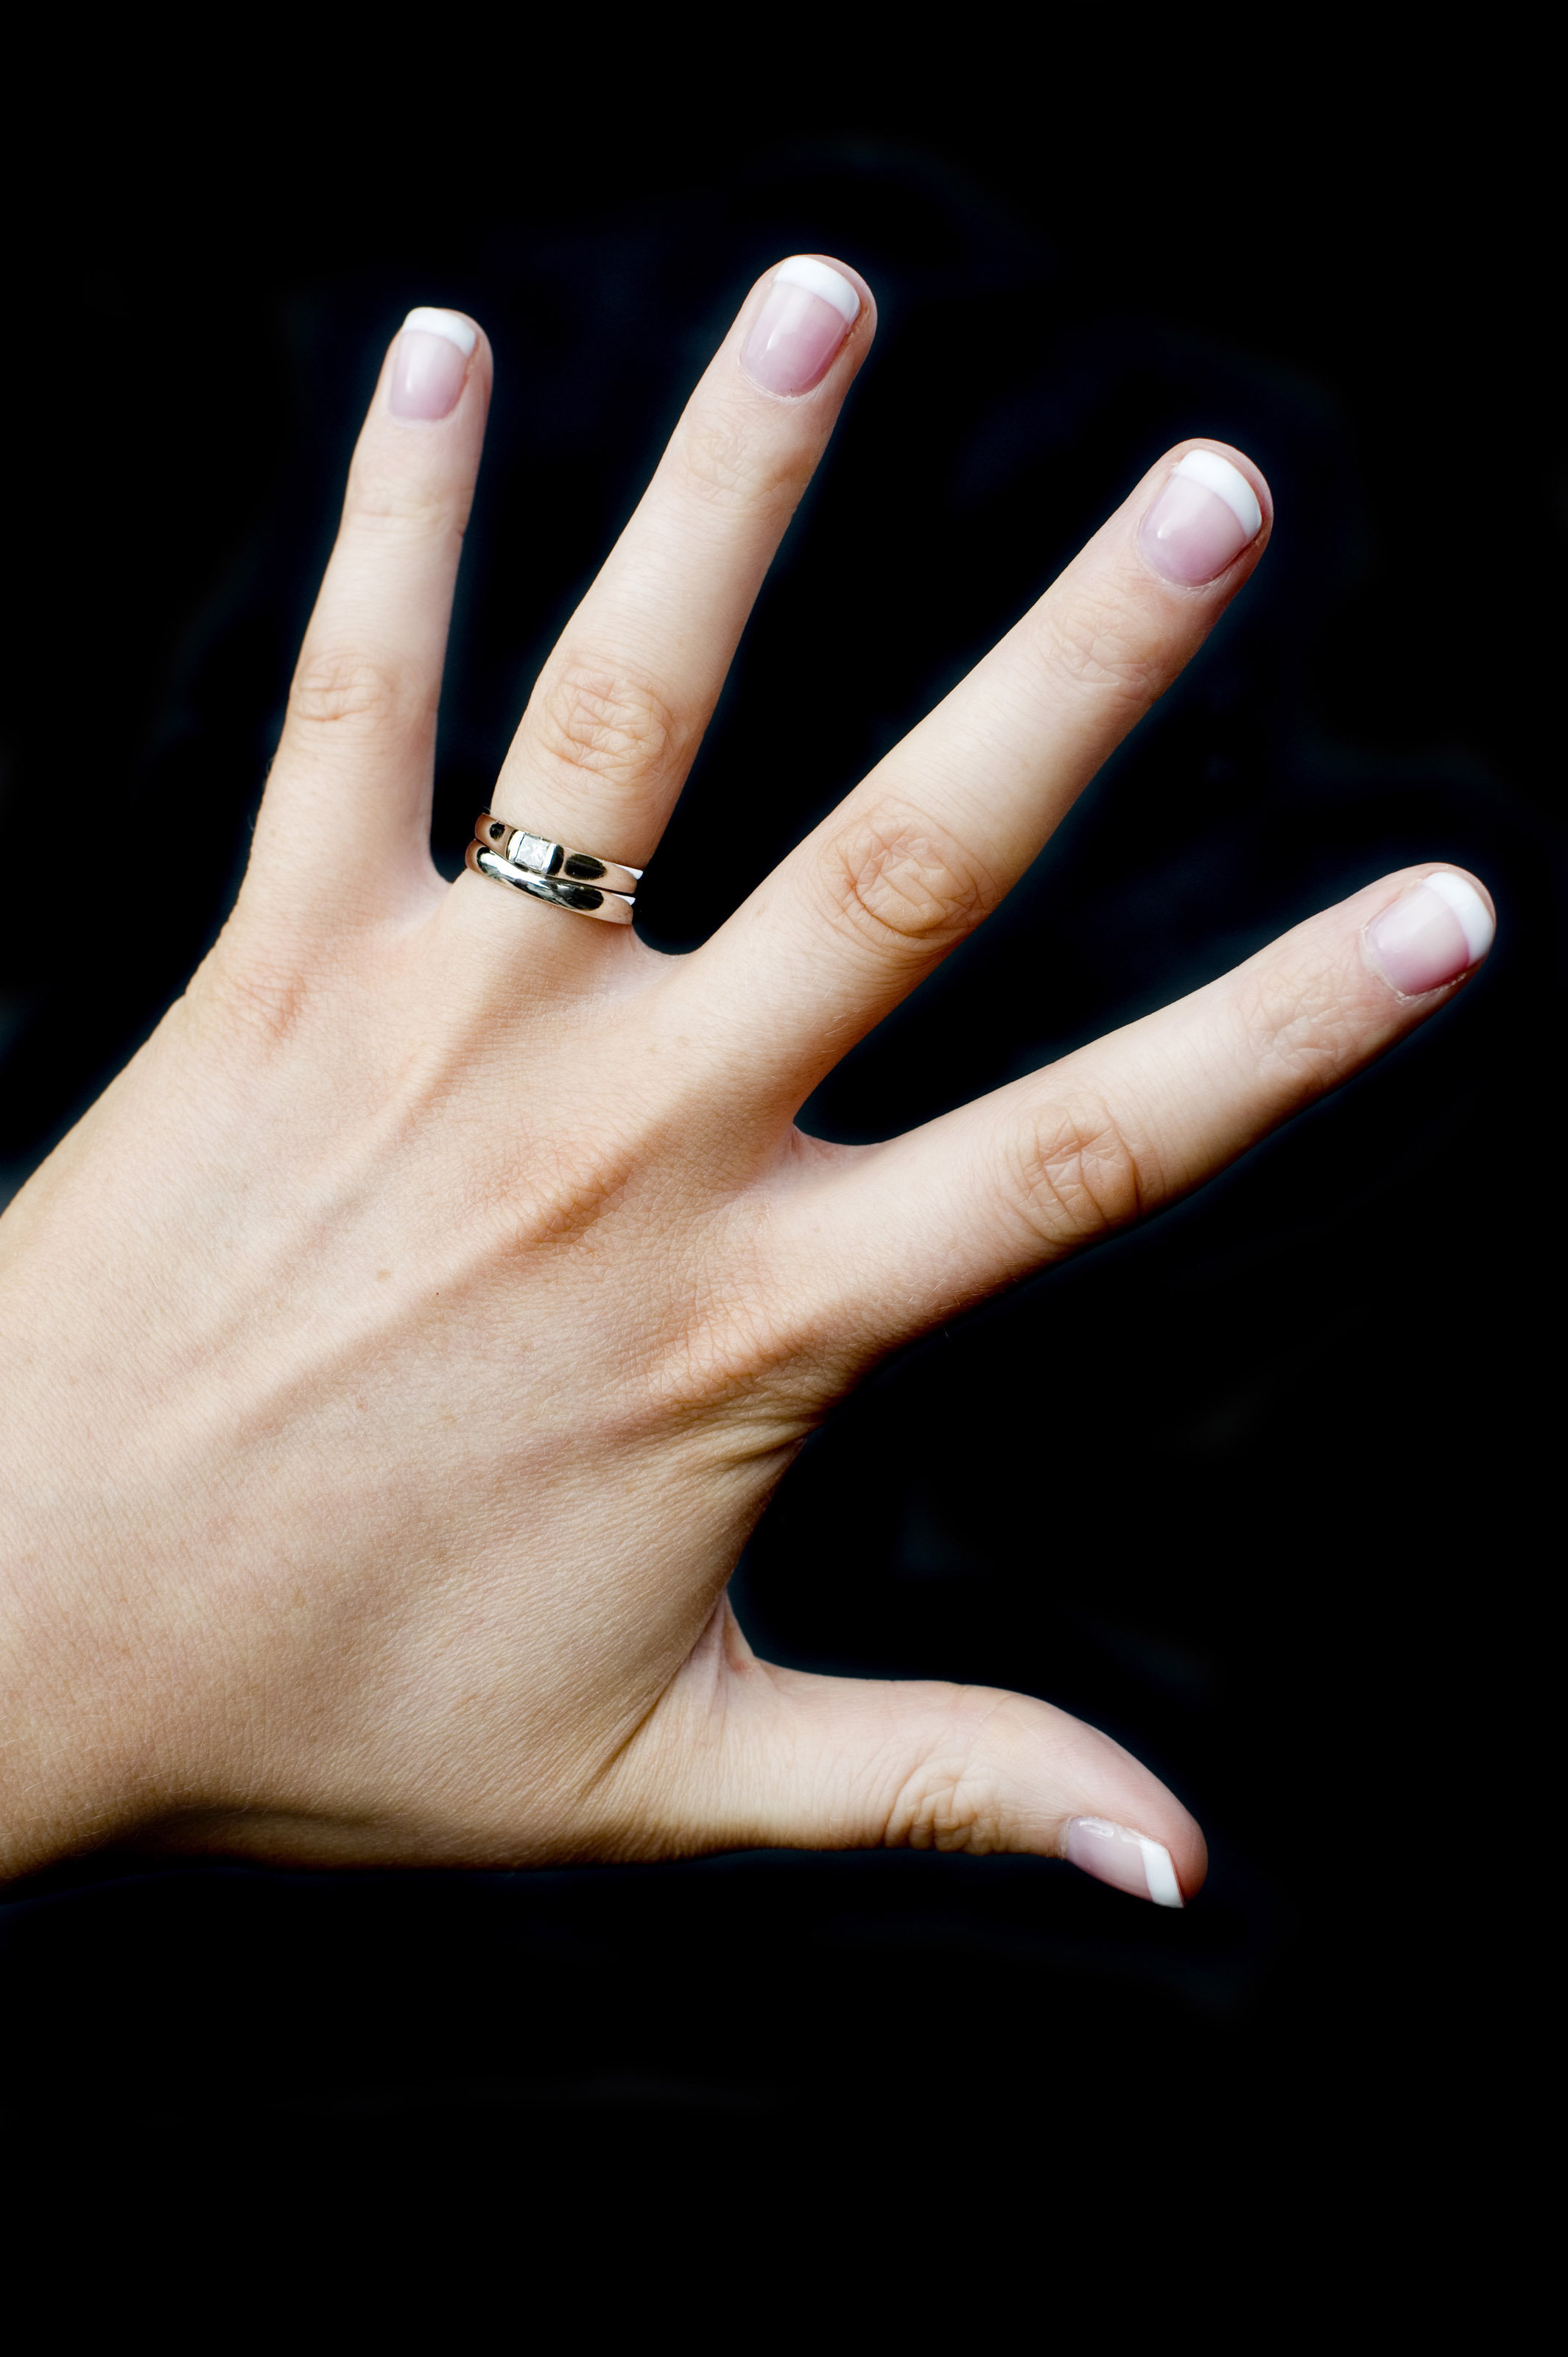 Female Ring Finger Tattoo